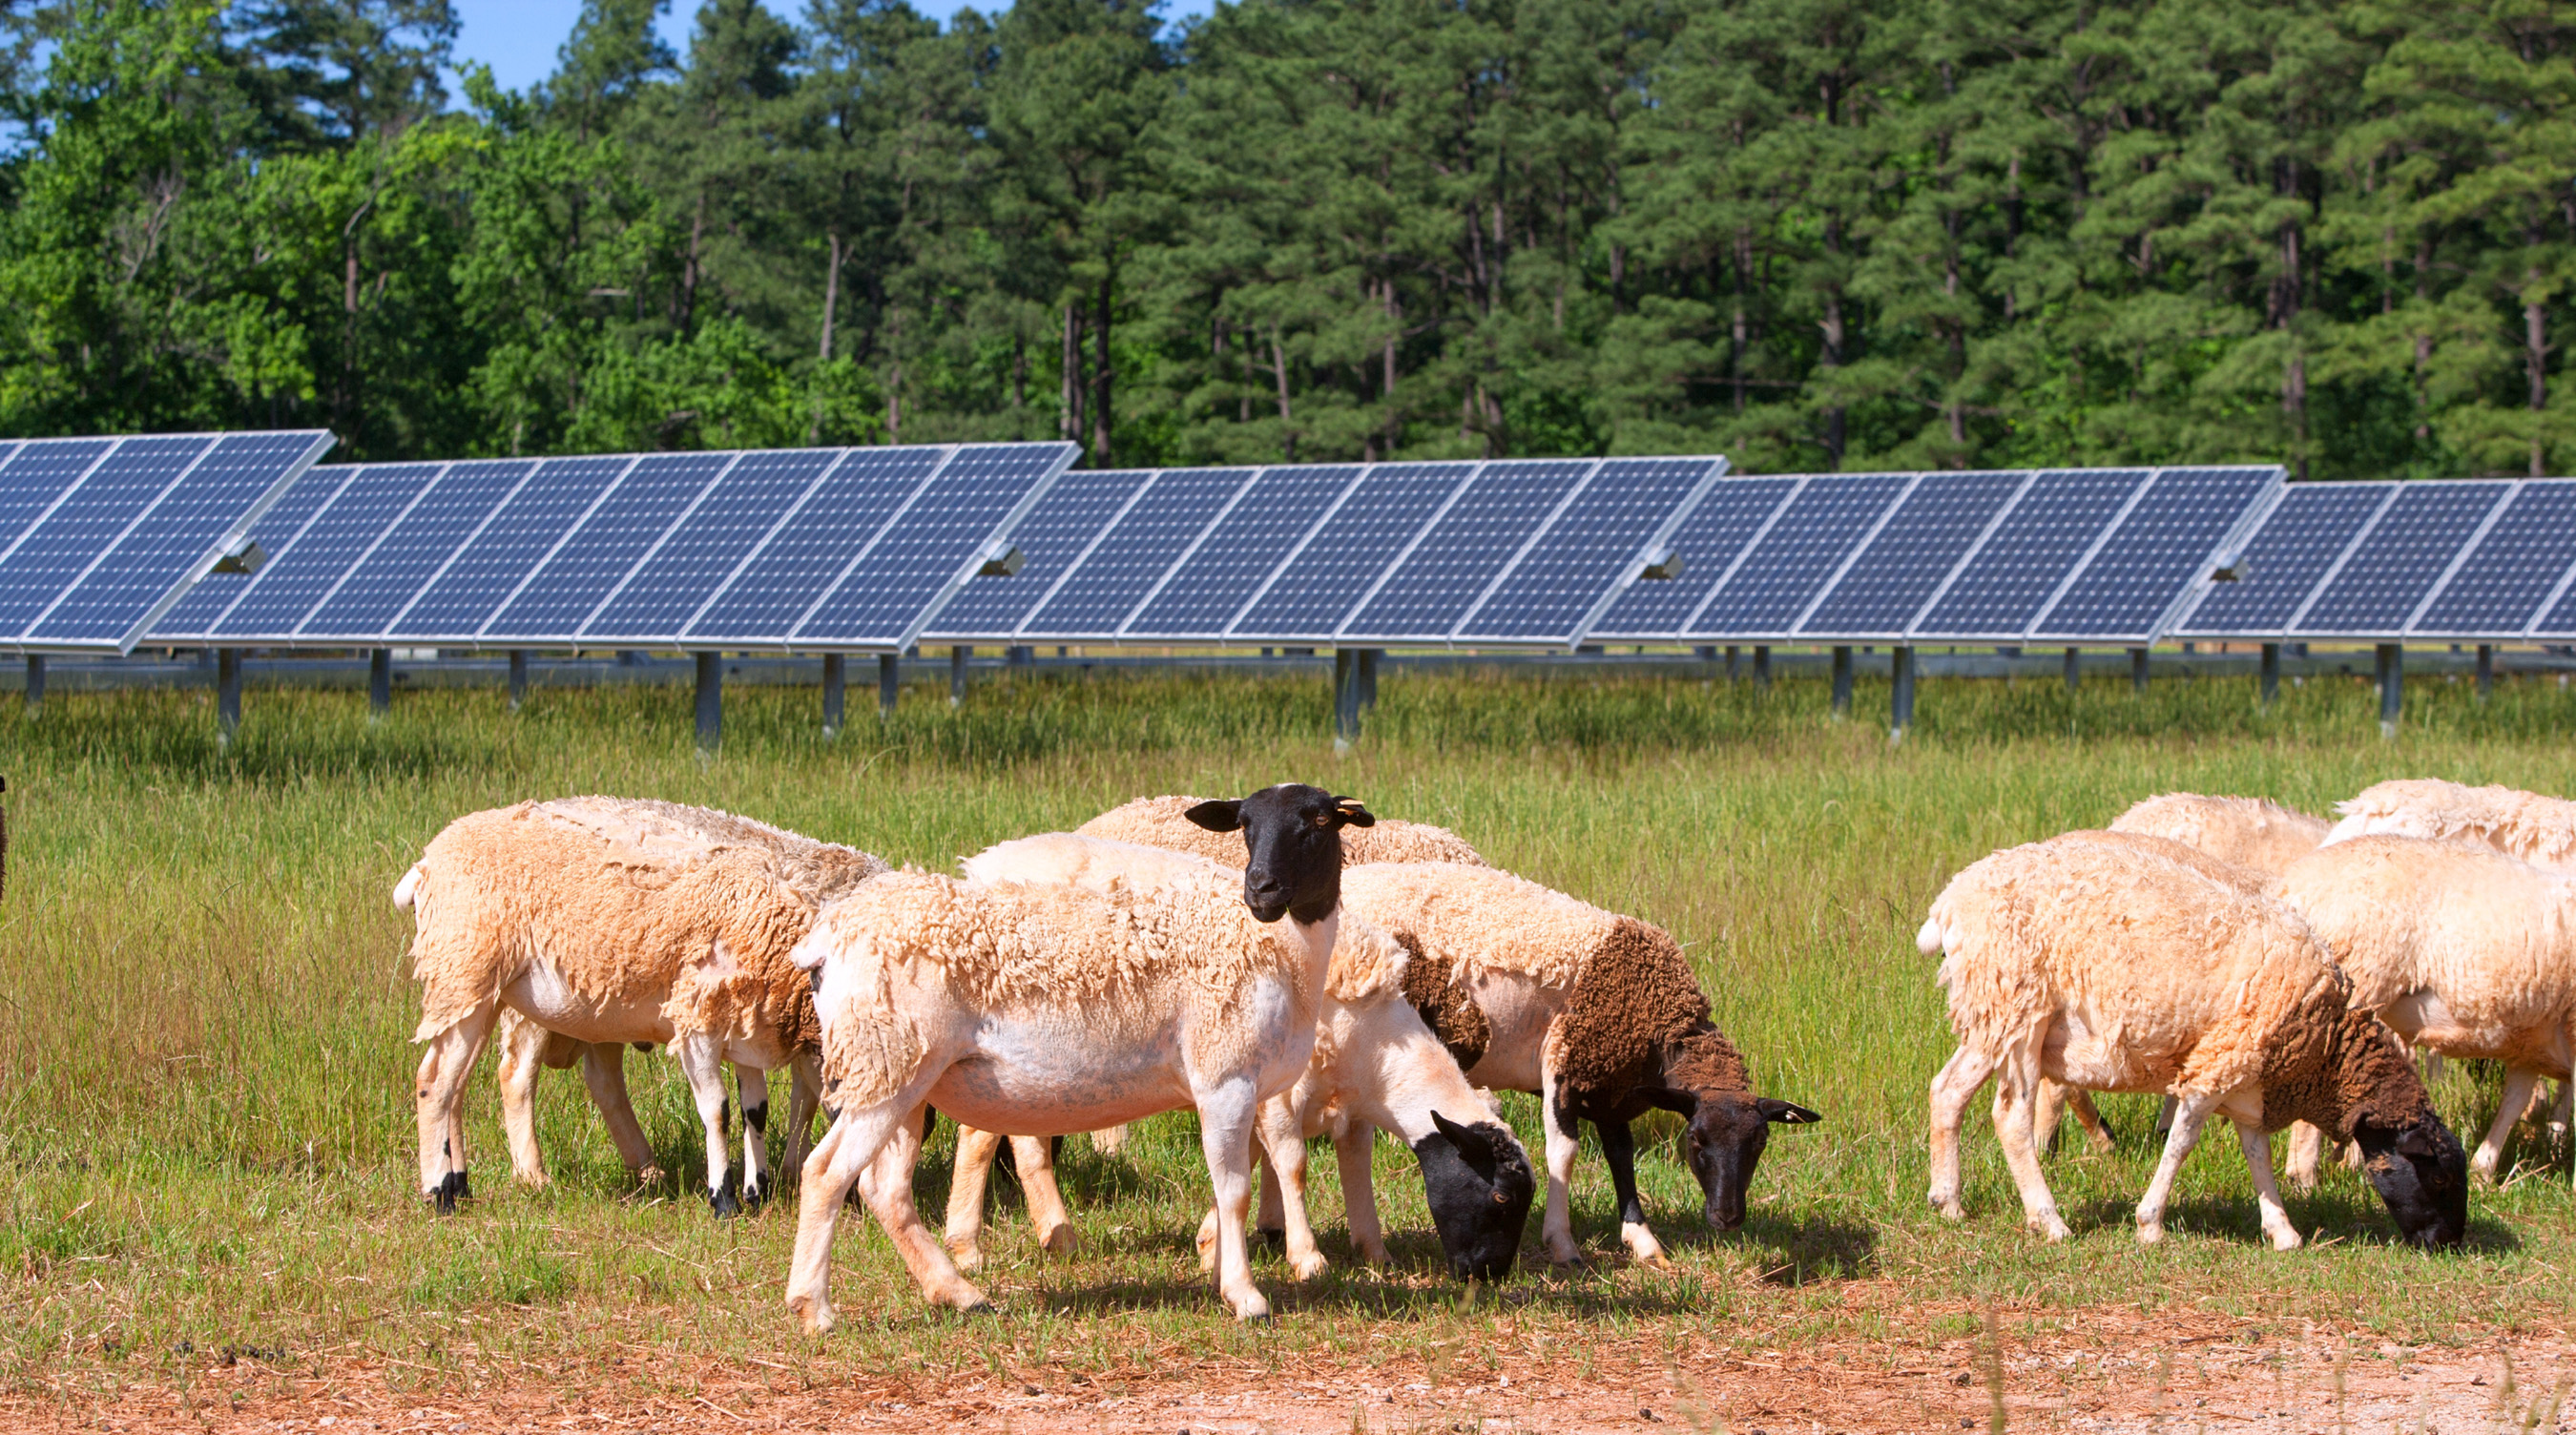 Dorper sheep flock helps to maintain the grass under the SAS solar panels and do so without disturbing the technology or the use of chemicals which also ensures the health of the nearby SAS beehives.